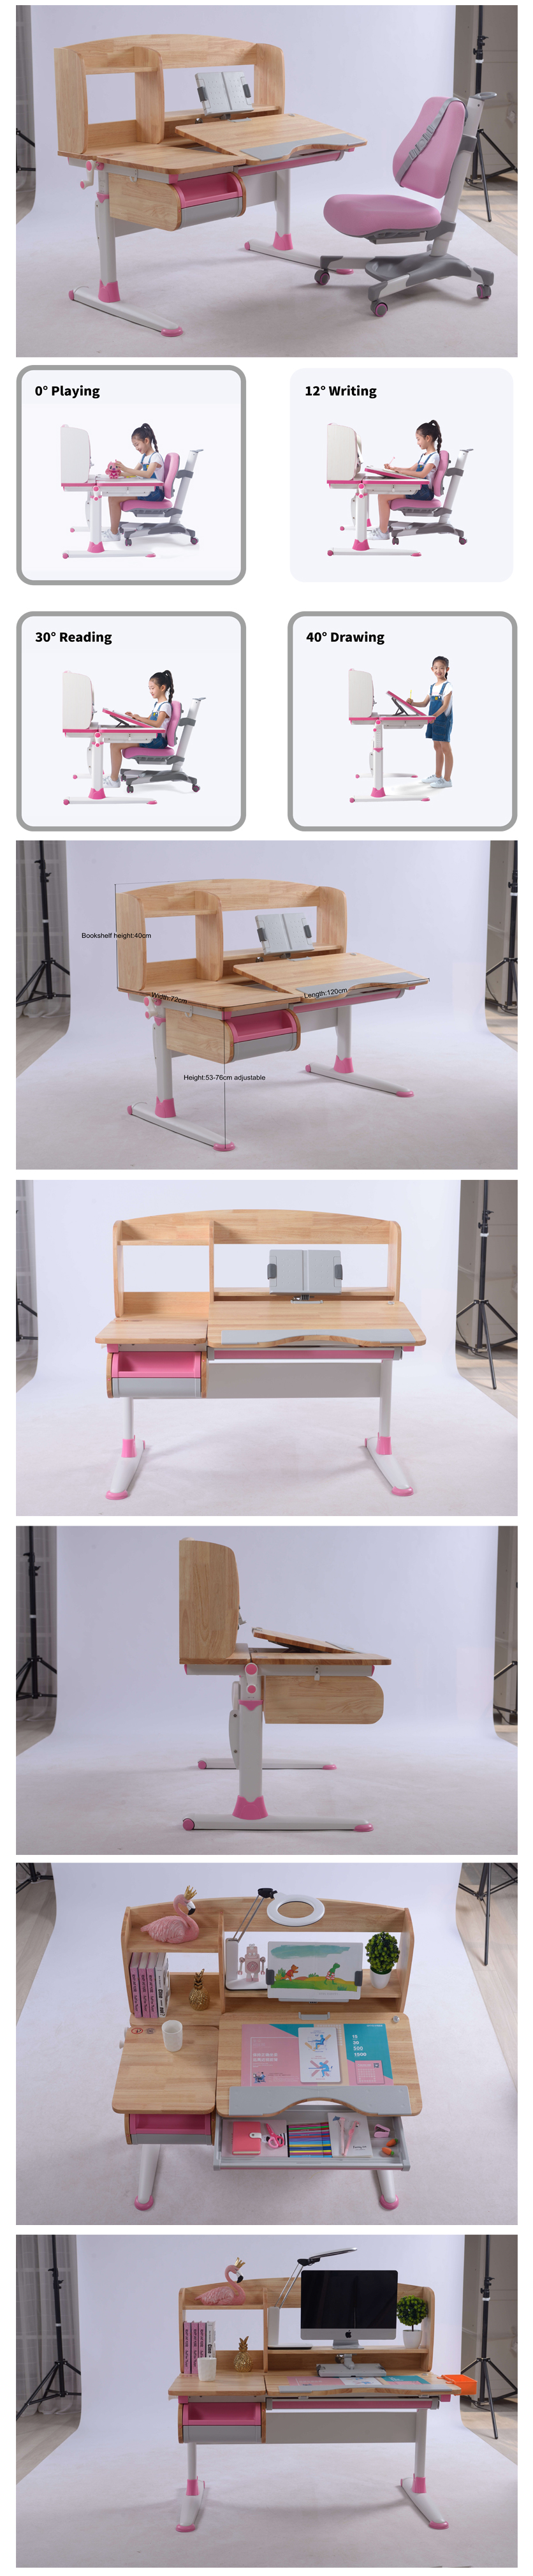 Children Learning Desk Wooden Table For Promotion